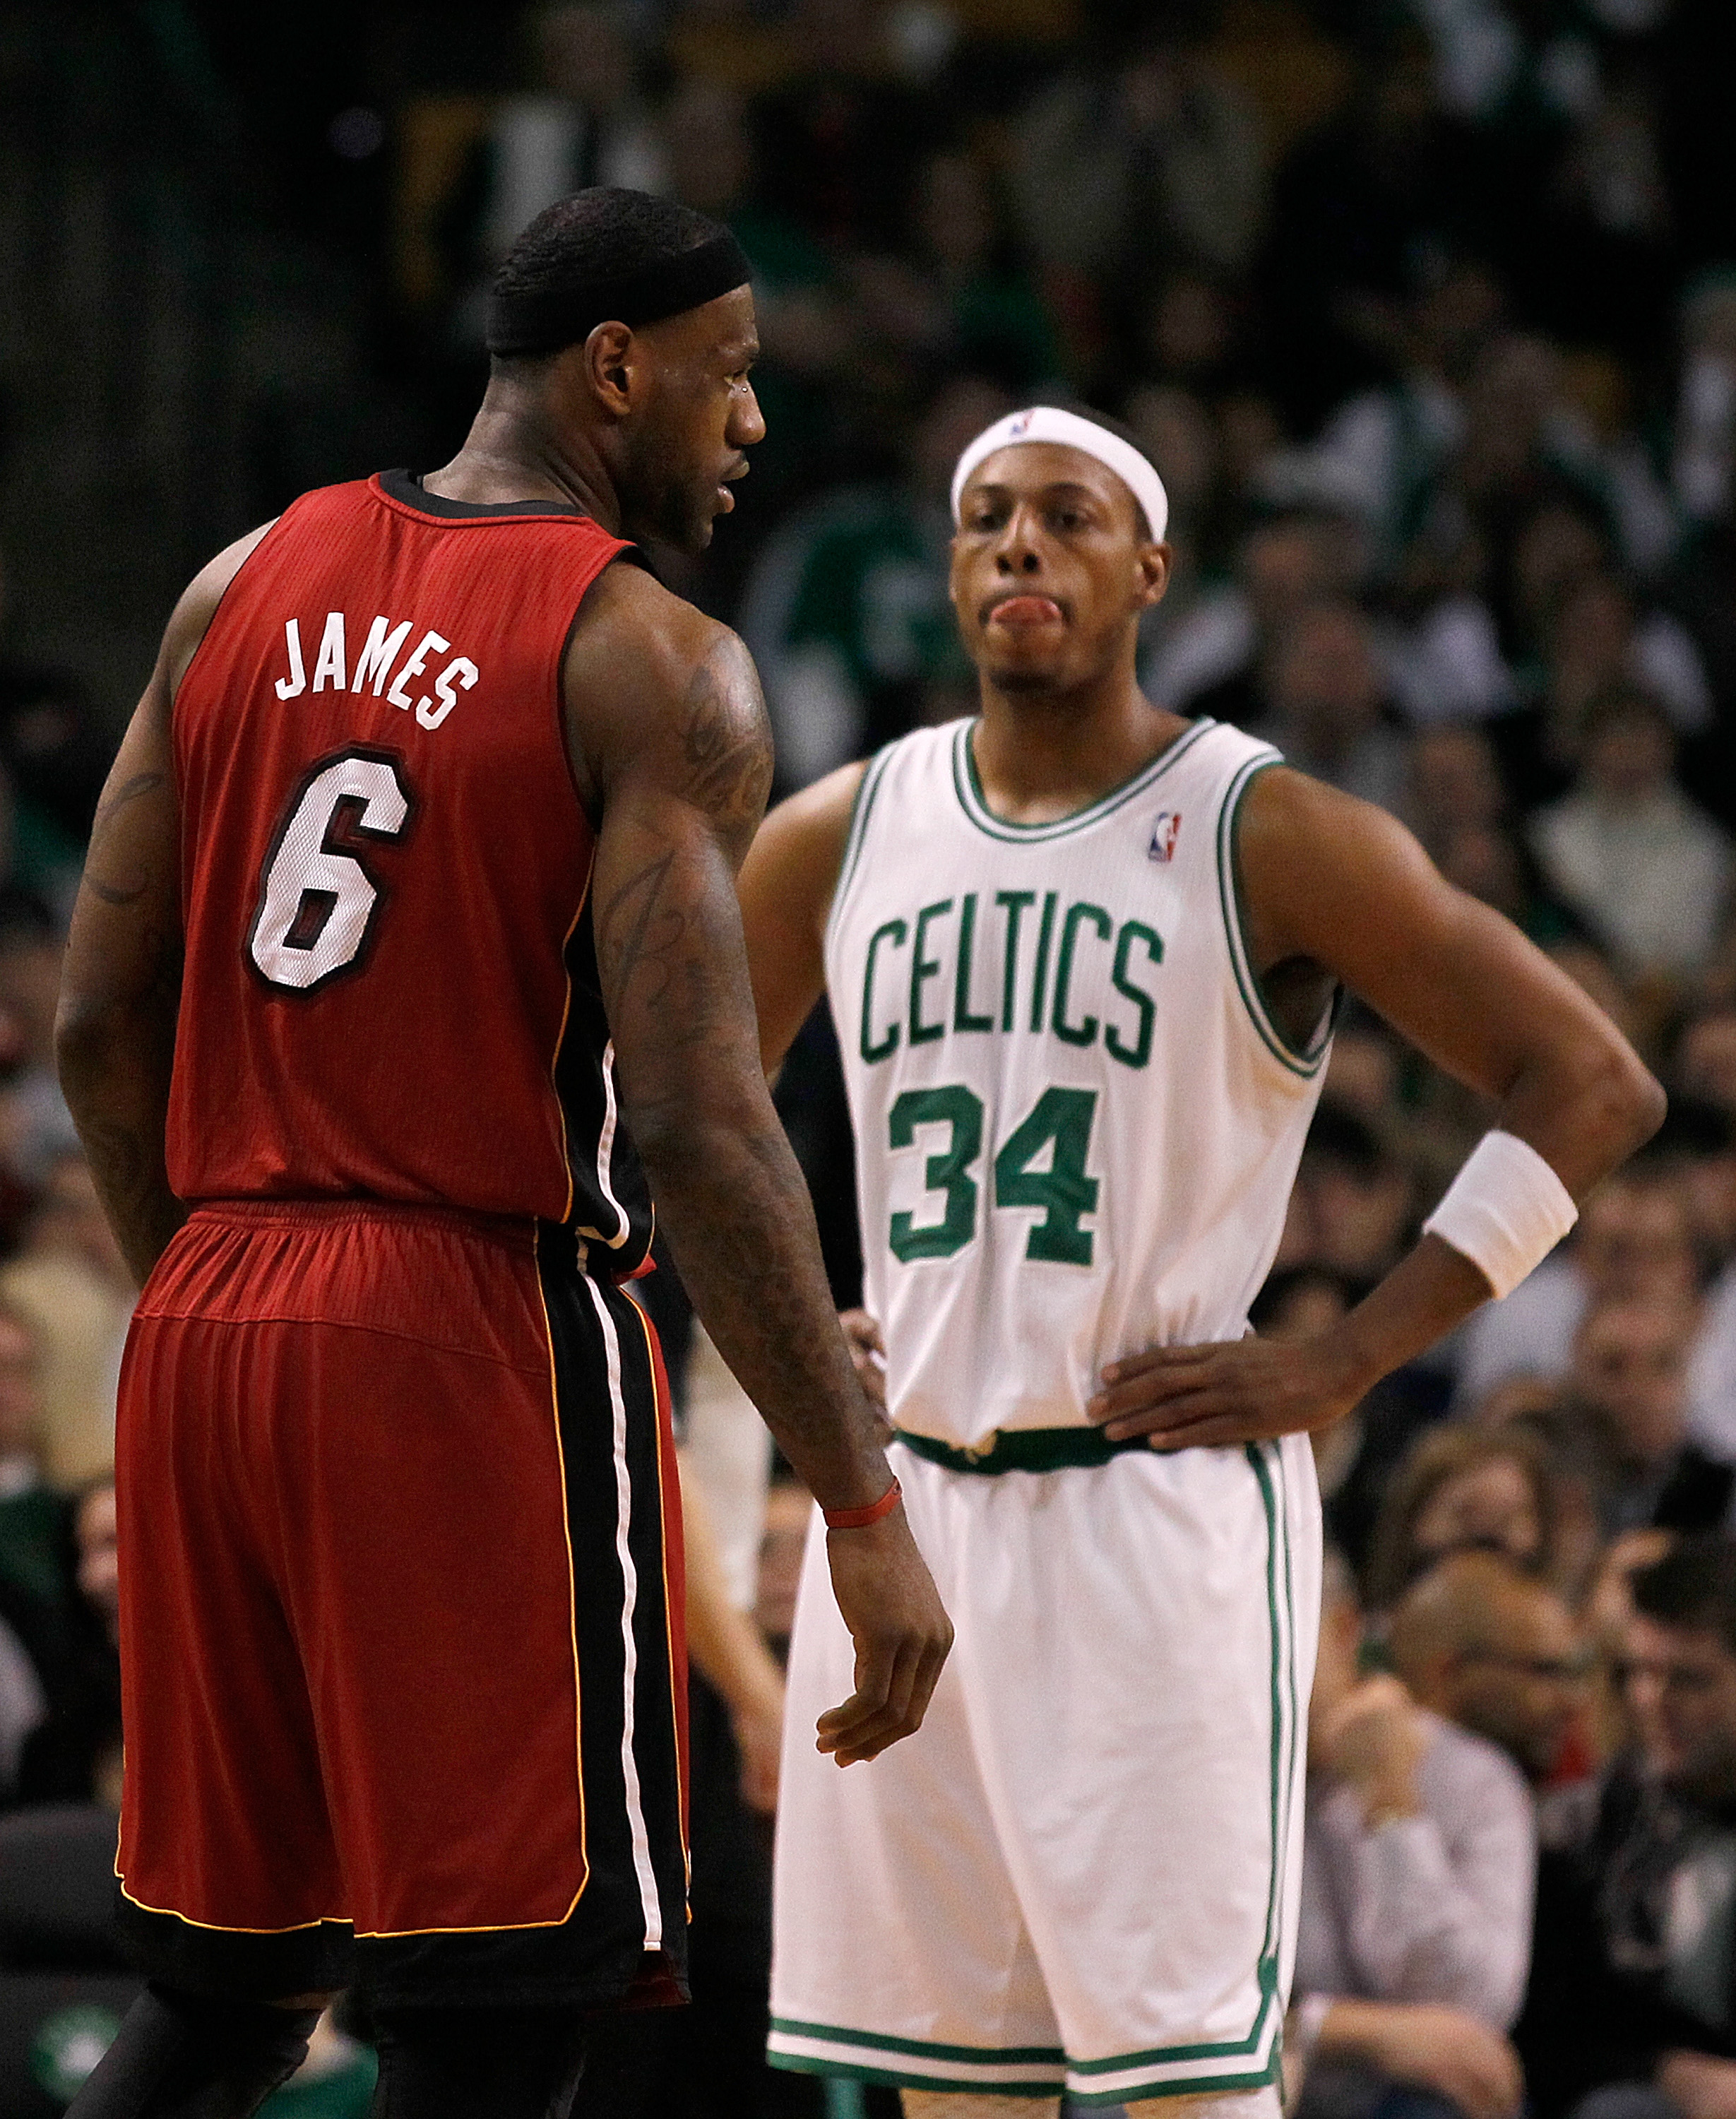 BOSTON - FEBRUARY 13:  LeBron James #6 of the Miami Heat and Paul Pierce #34 of the Boston Celtics take a breather at TD Garden on February 13, 2011 in Boston, Massachusetts. NOTE TO USER: User expressly acknowledges and agrees that, by downloading and/or